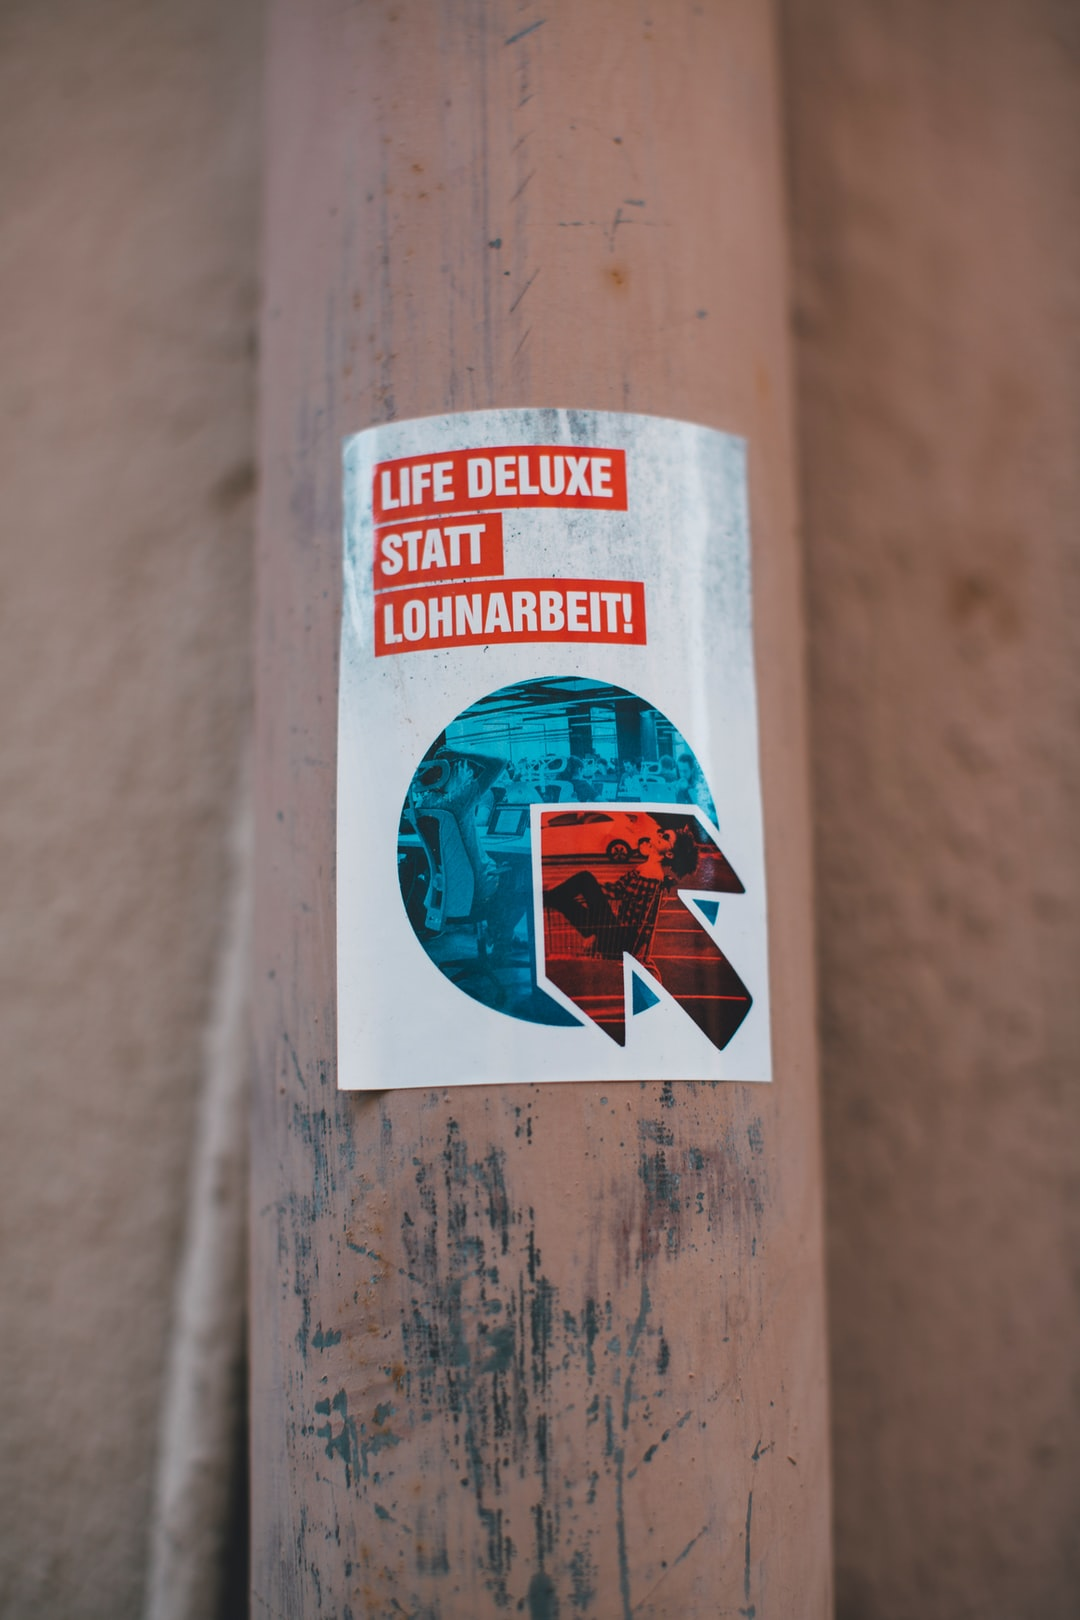 LIFE DELUXE INSTEAD OF PAYED WORKING – Life deluxe statt Lohnarbeit